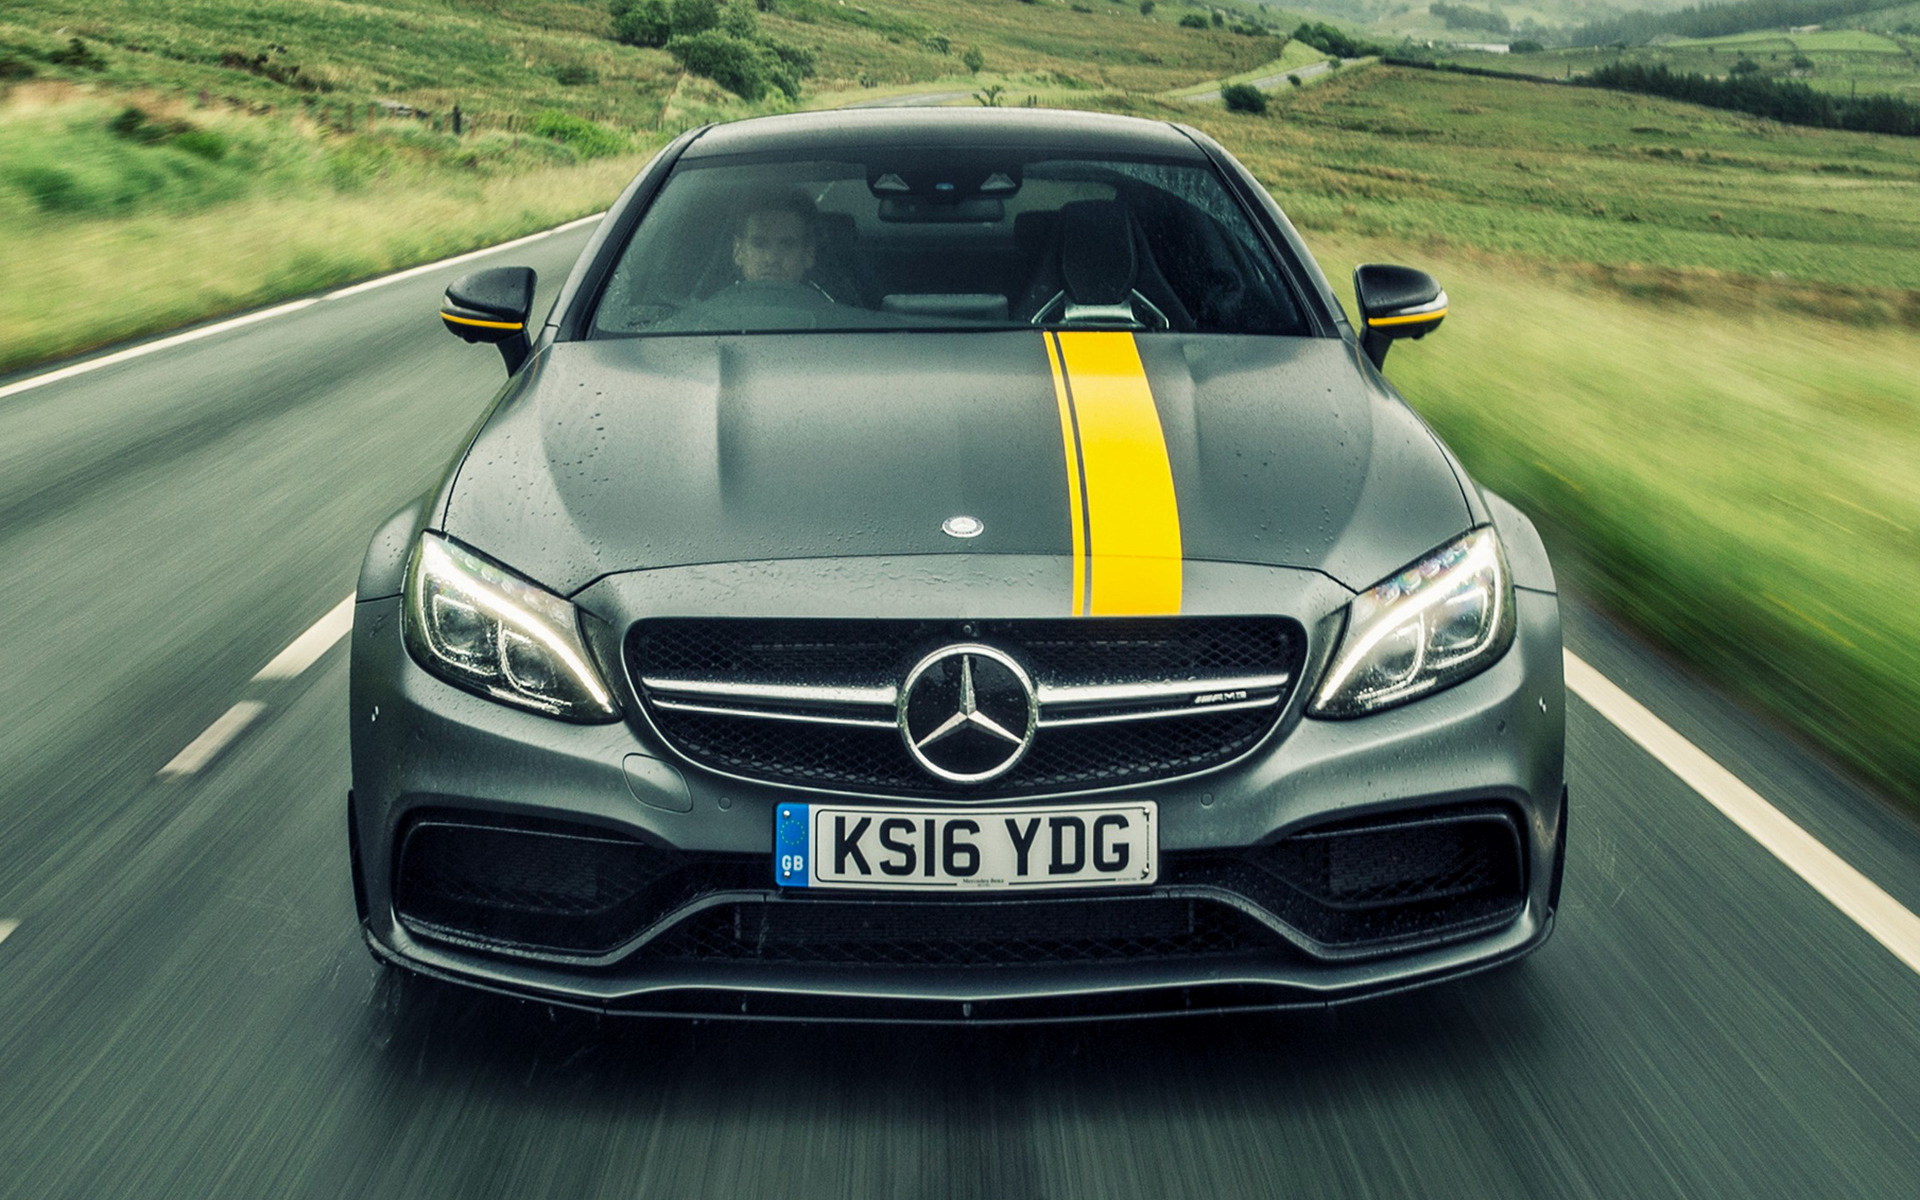 Mercedes amg c 63 s coupe edition 1 2016 wallpapers and hd images - Wallpapers Mercedes Amg C 63 S Coupe Edition 1 2016 Uk Thumbnail 49626